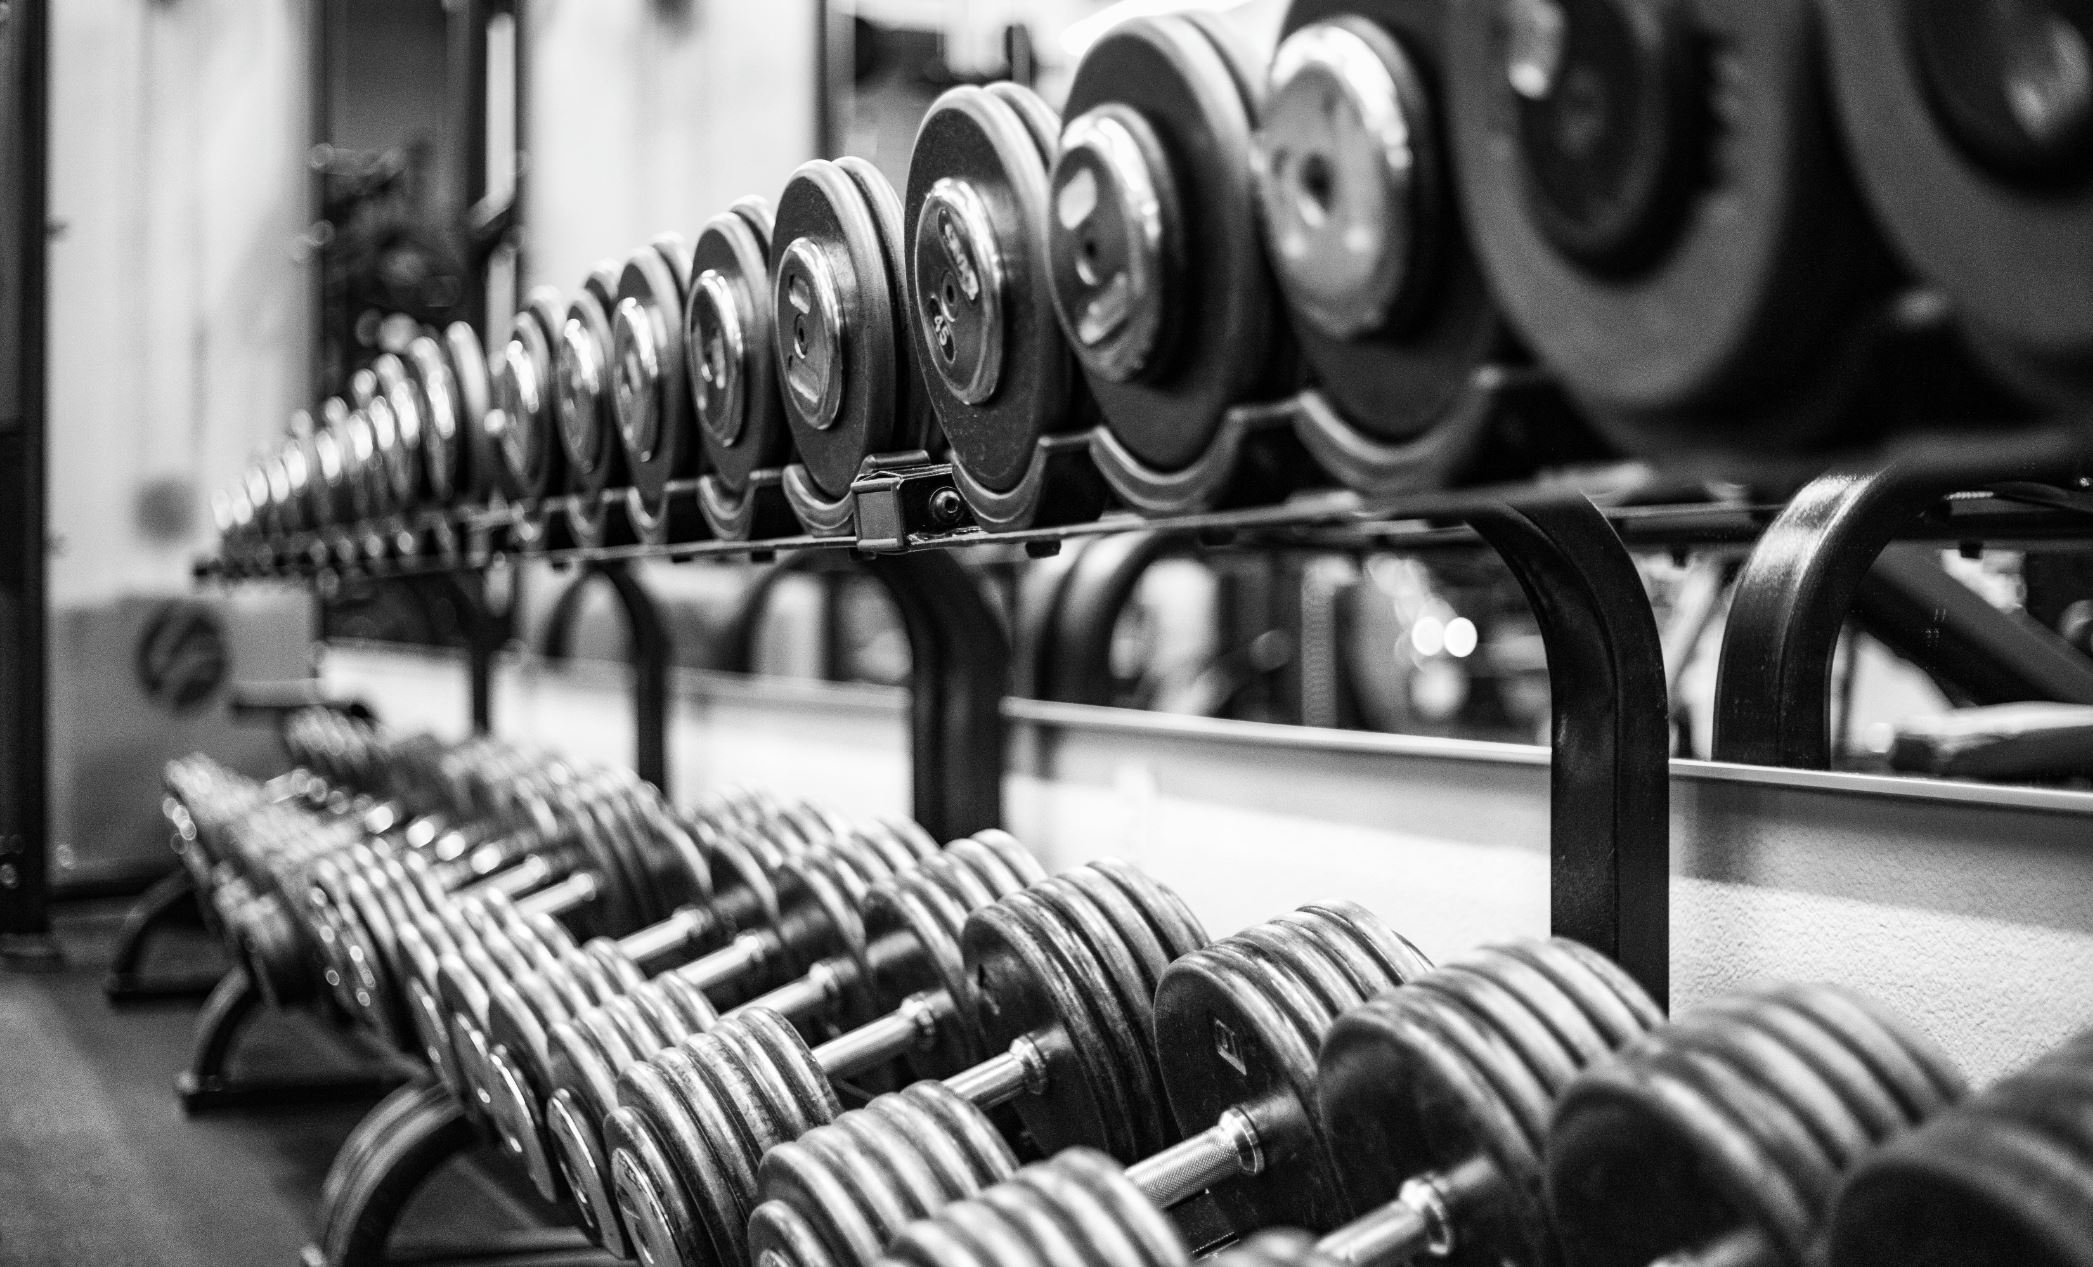 Weight training can be beneficial even later in life, without previous experience - Image Credit:  Luis Reyes via Unsplash  - HDR tune by  Universal-Sci